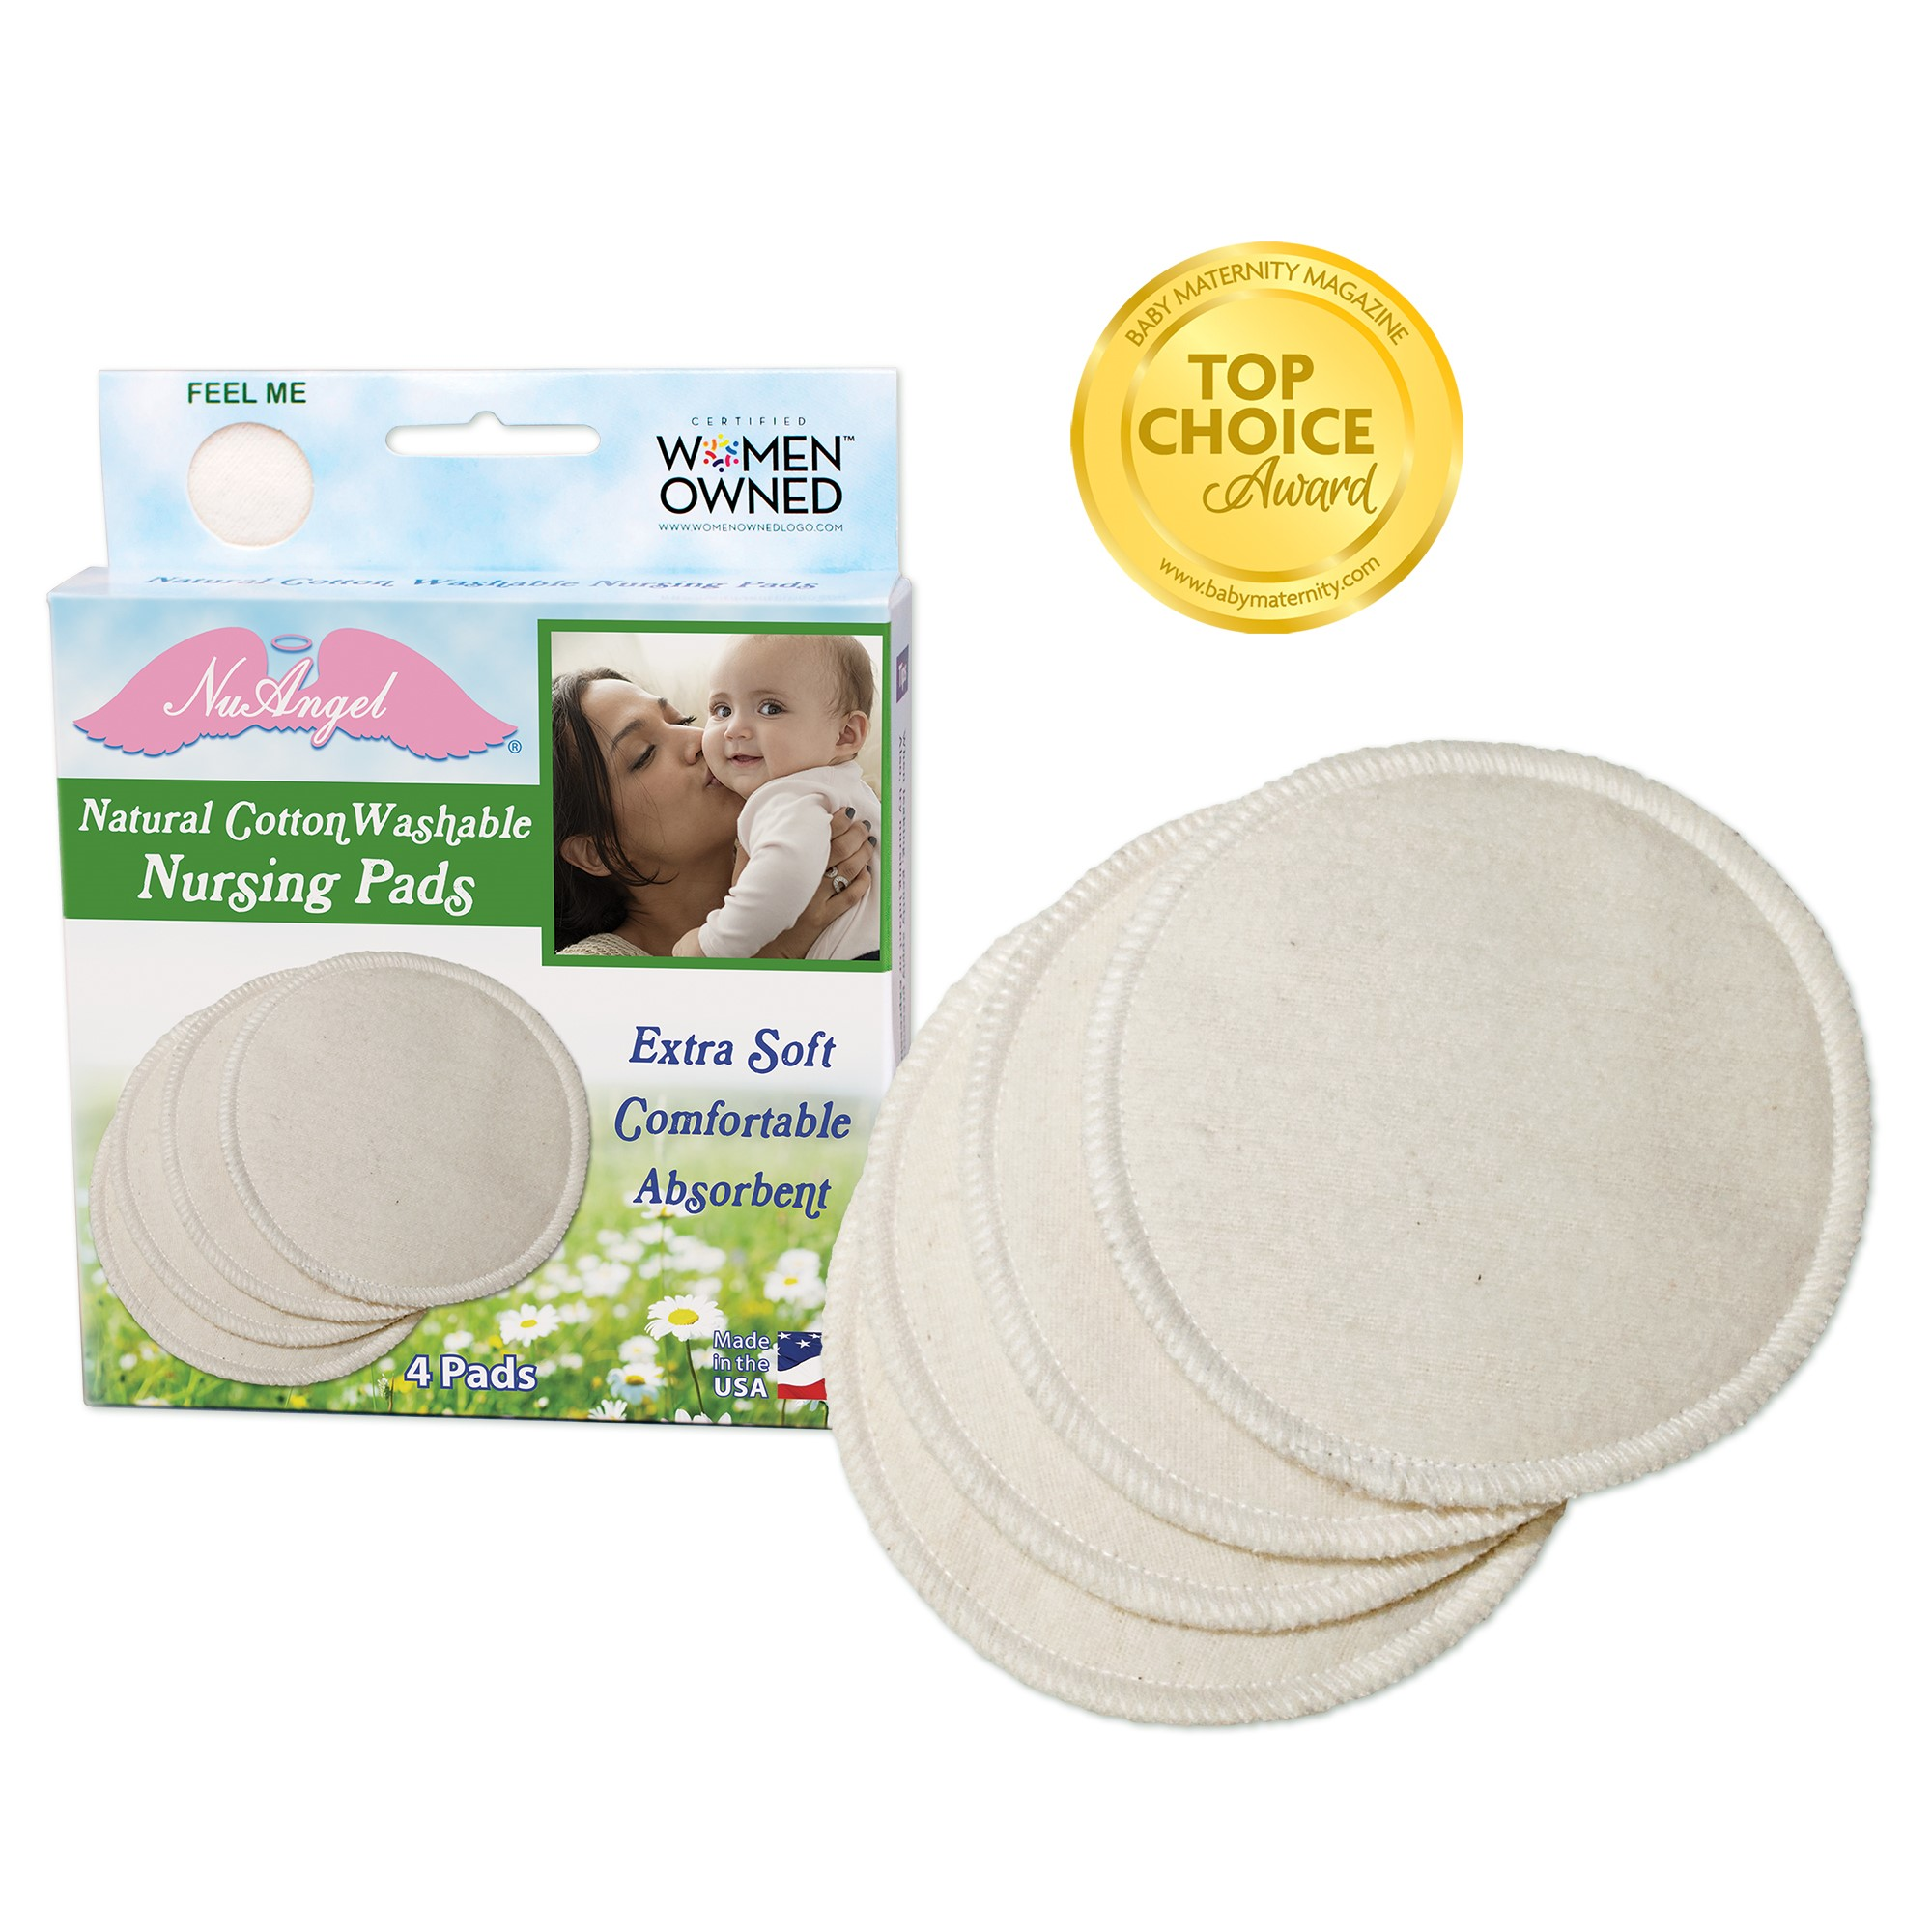 NuAngel Natural Cotton Washable Nursing Pads, 4 ct